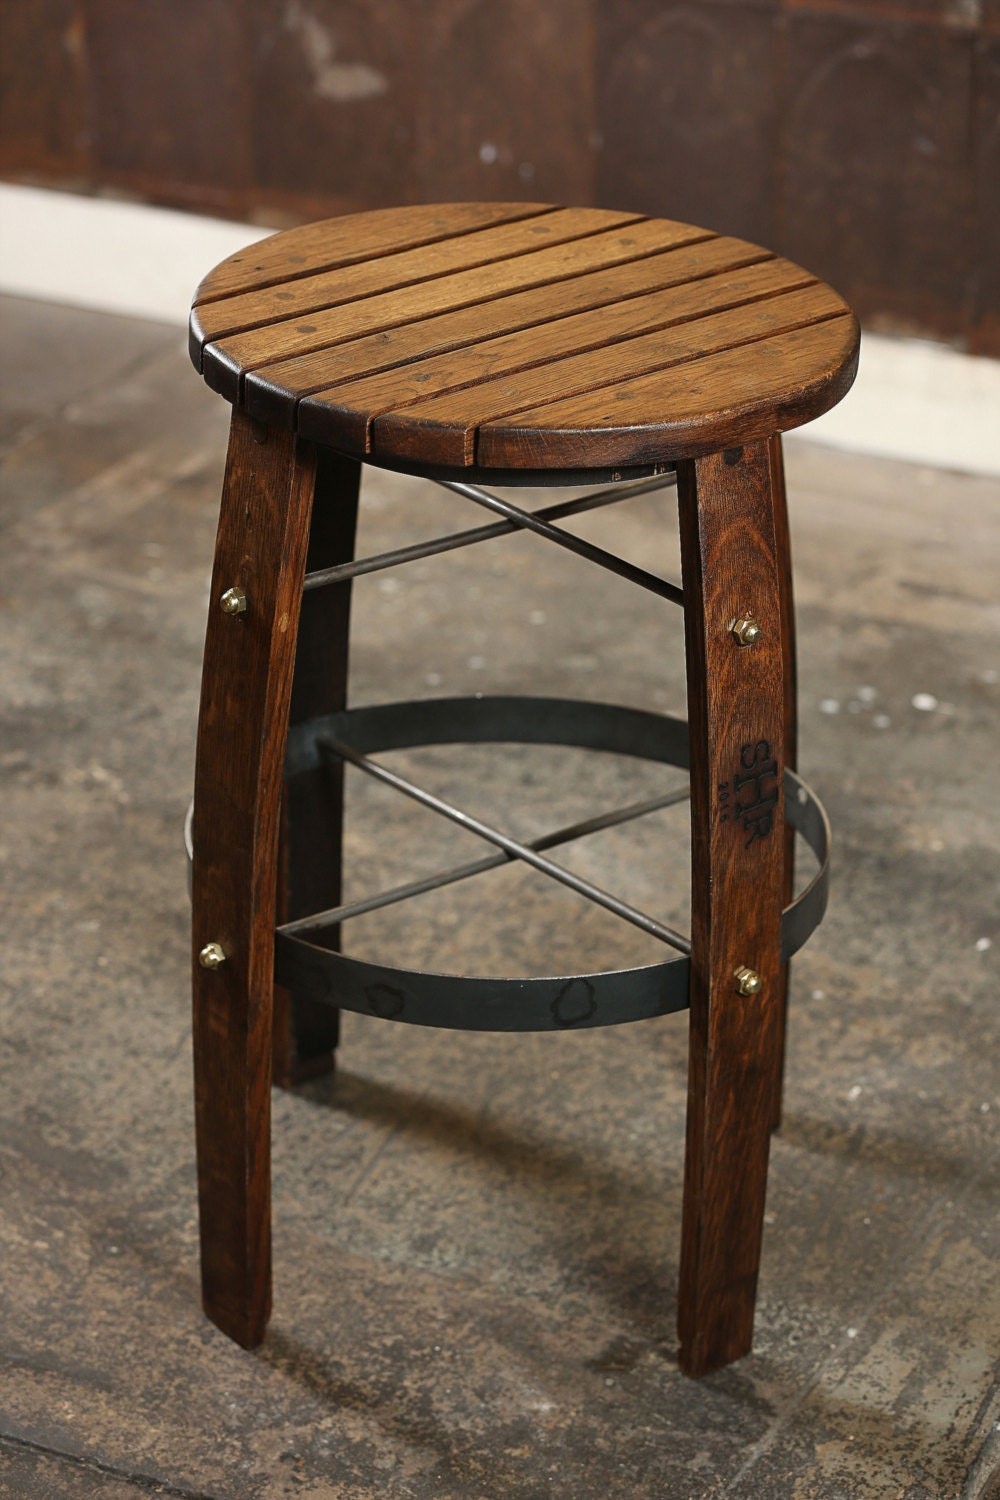 Whiskey Barrel Bar Stool by SouthernHeritageLLC on Etsy : ilfullxfull1086011205c1ux from www.etsy.com size 1000 x 1500 jpeg 272kB